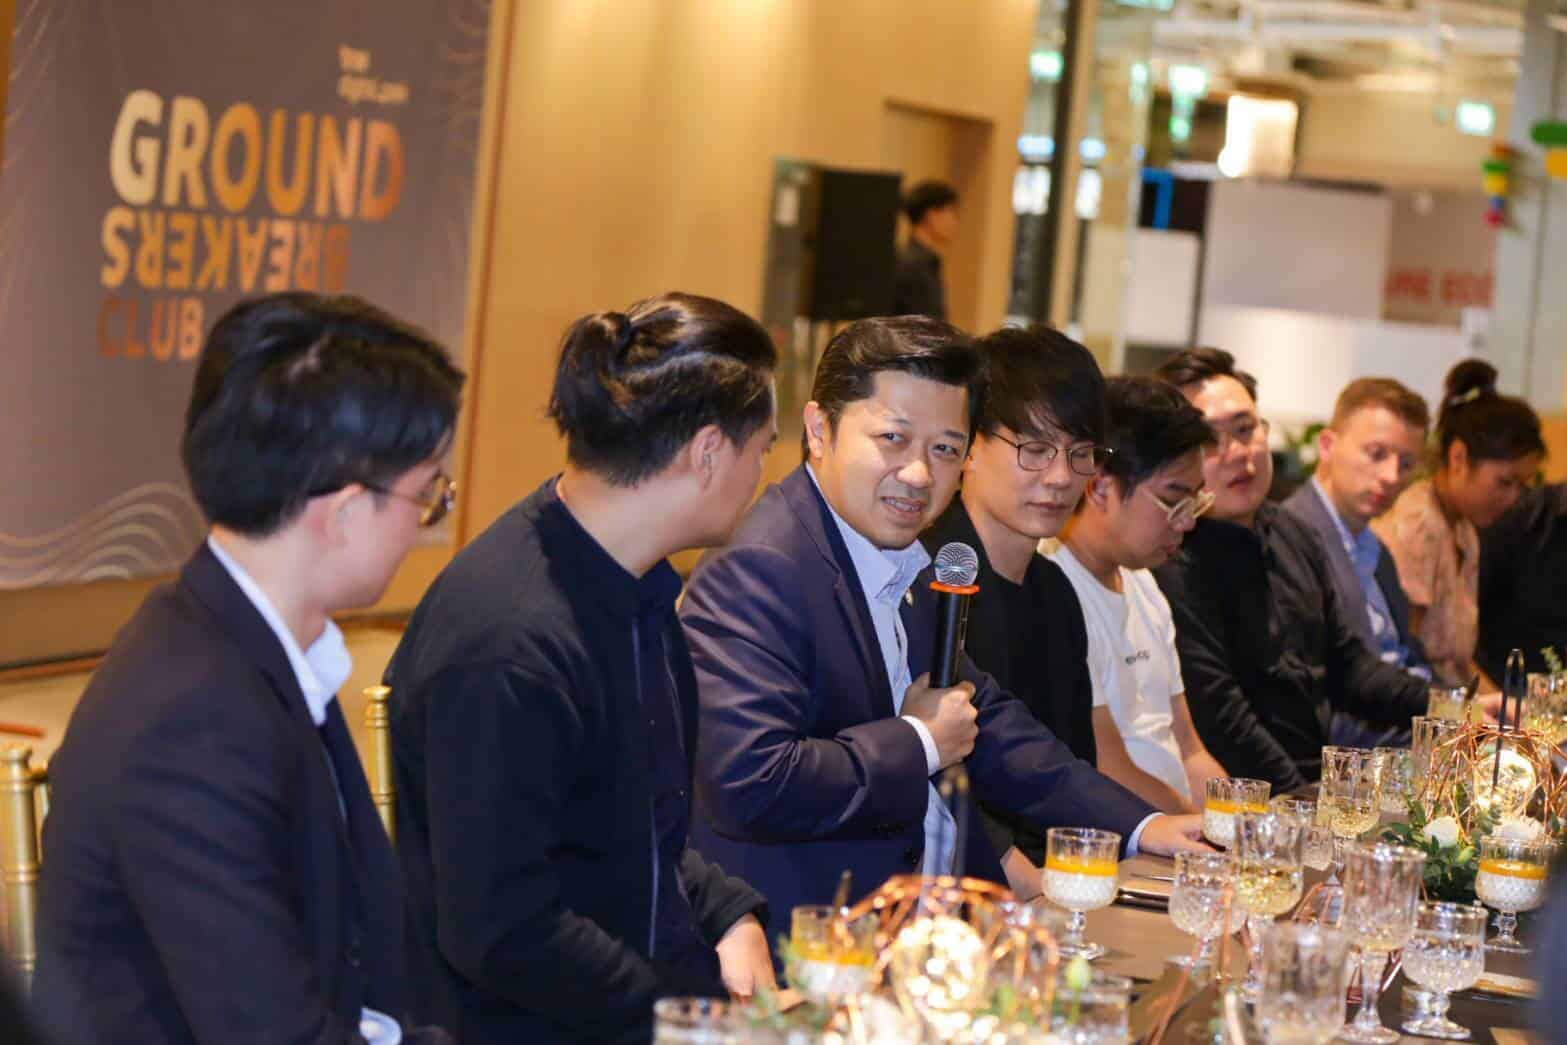 TRUE DIGITAL PARK KICKS OFF GROUNDBREAKERS CLUB--THE FIRST CLUB OF LEADING STARTUP FOUNDERS IN THAILAND.